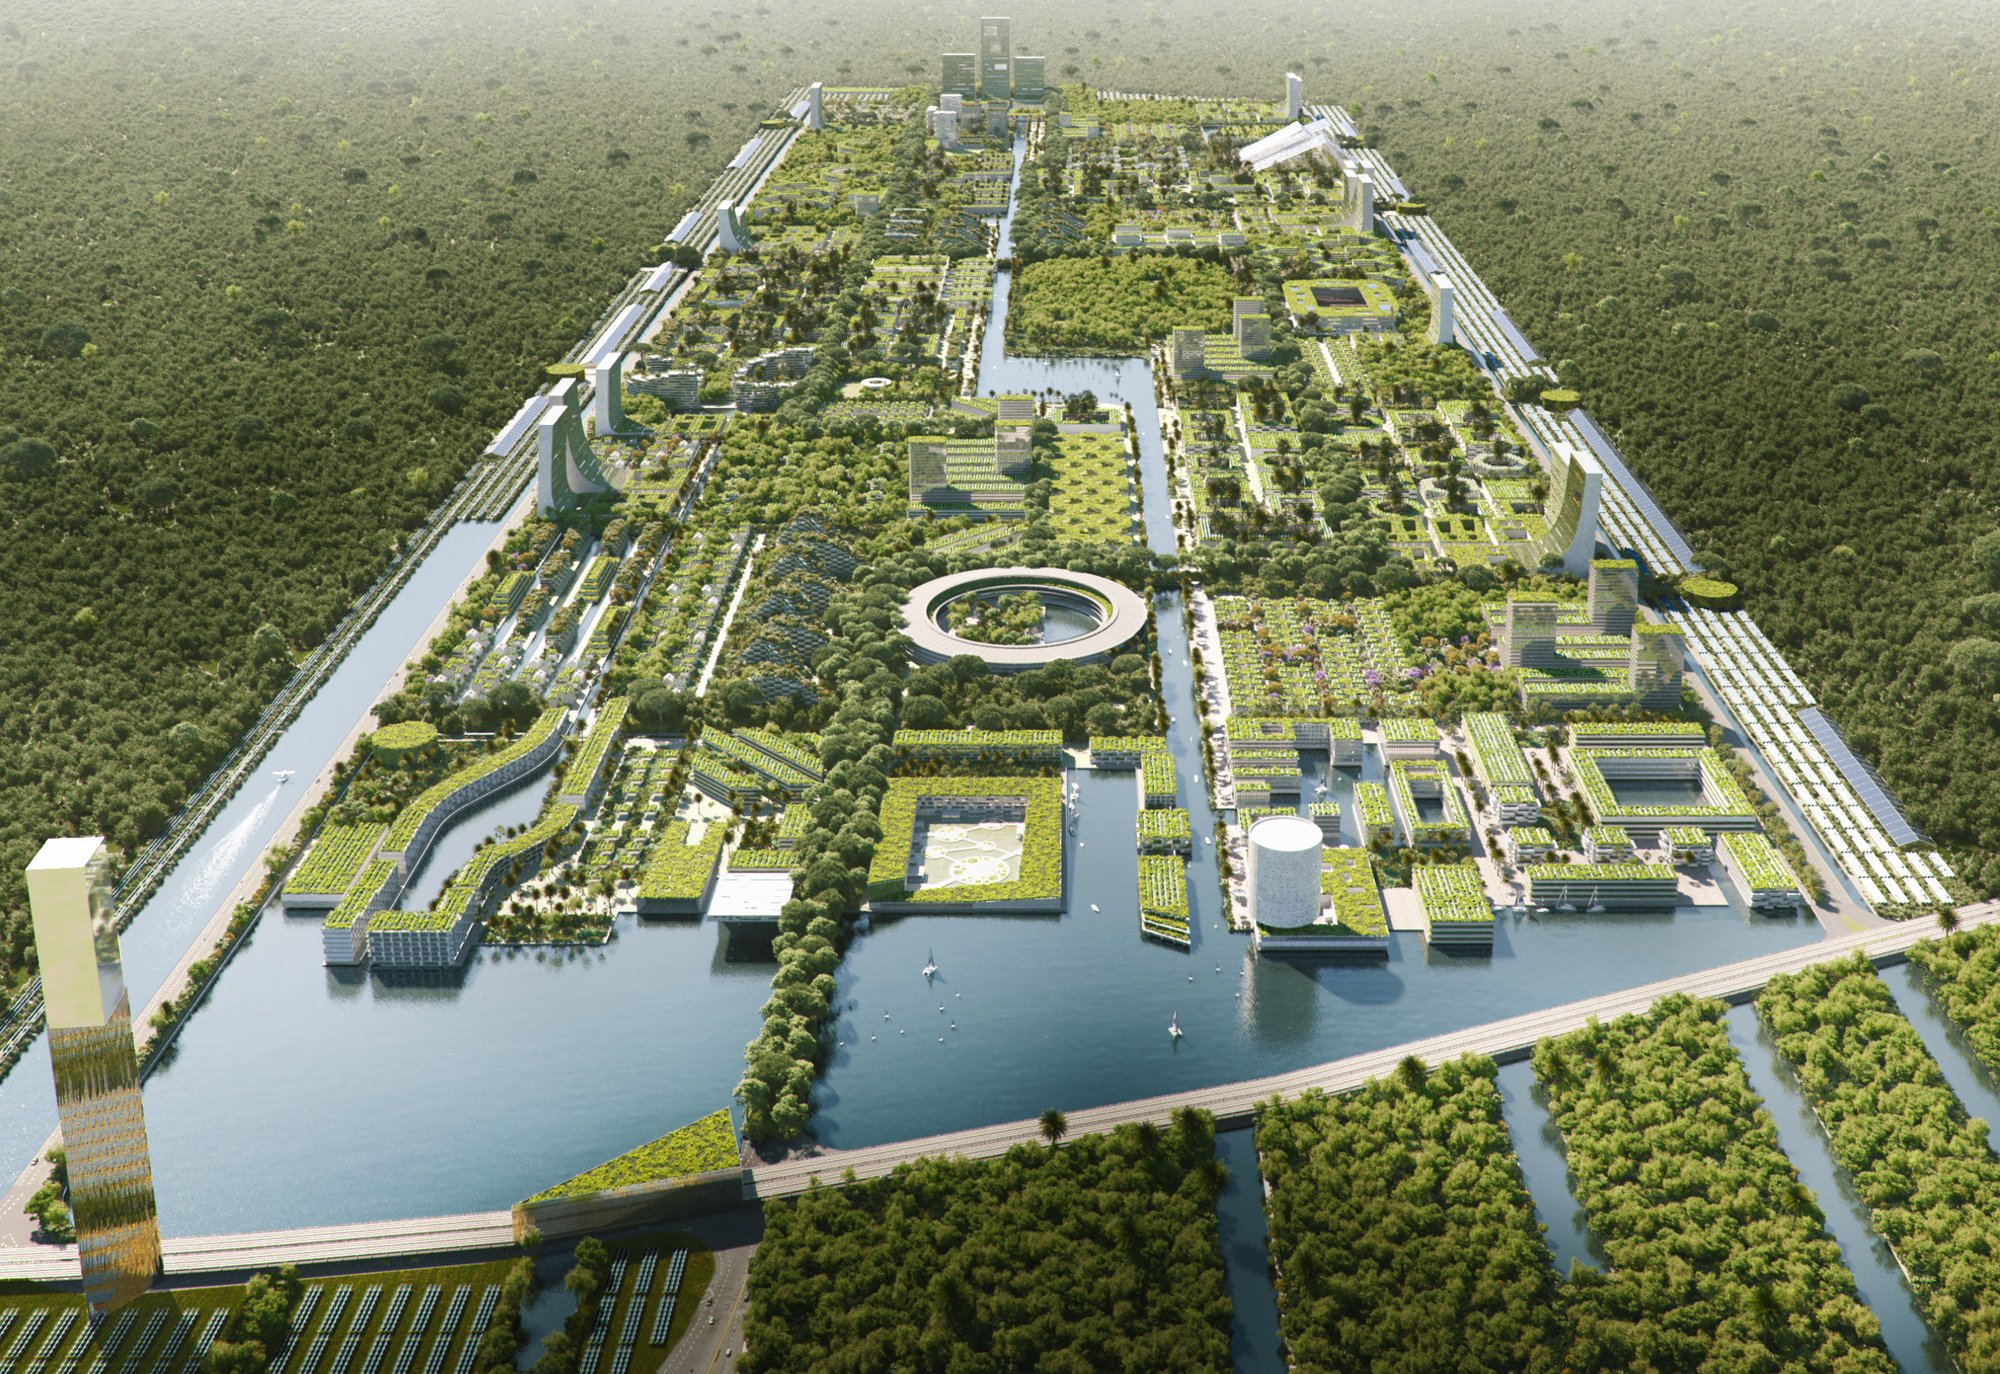 Smart Forest City Cancun, Projekt ab 2019, Rendering: Stefano Boeri Architetti